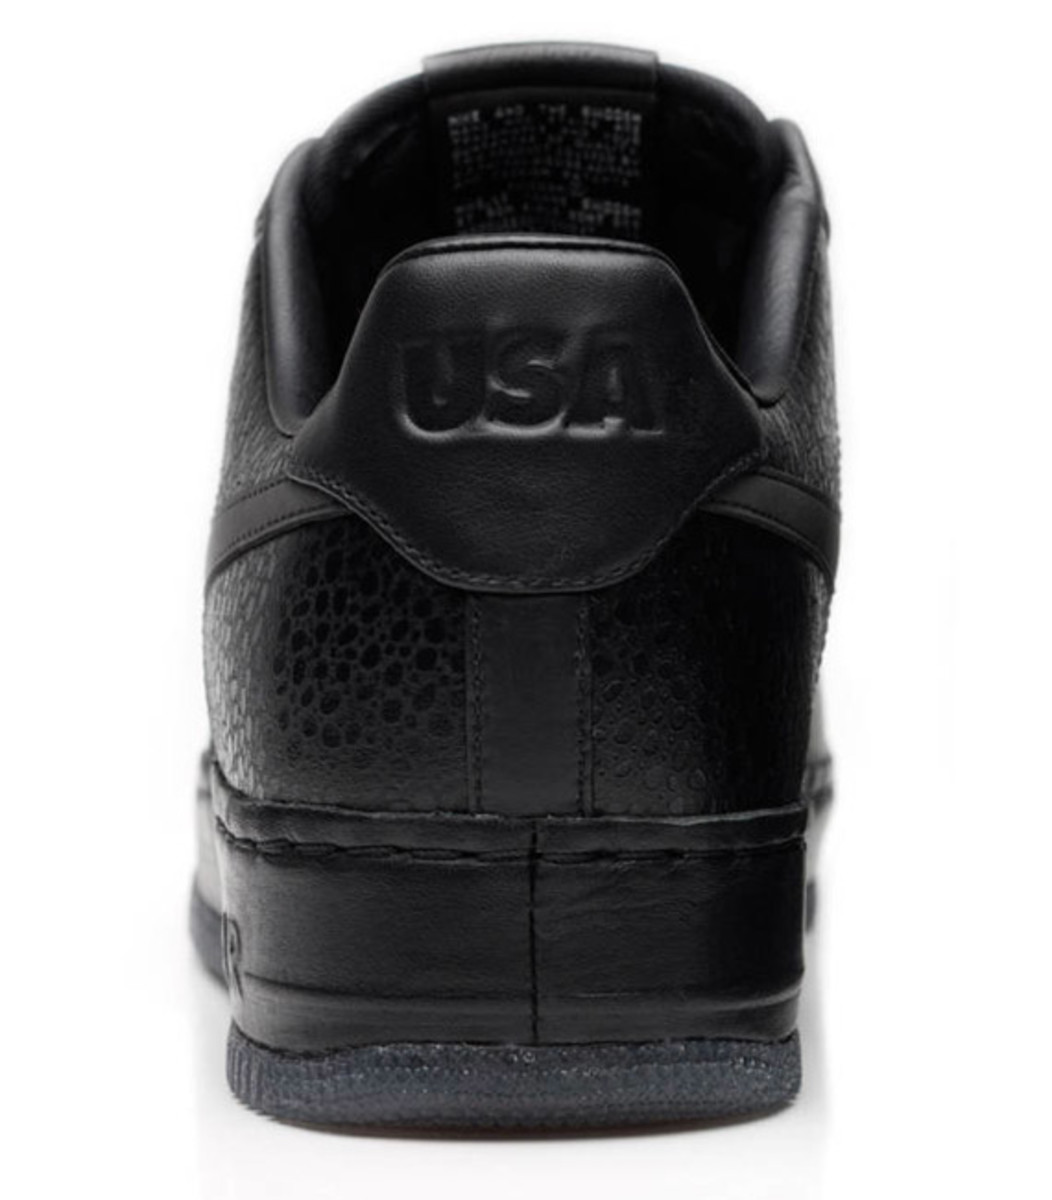 jay-z-nike-air-force-1-all-black-everything-usa-08